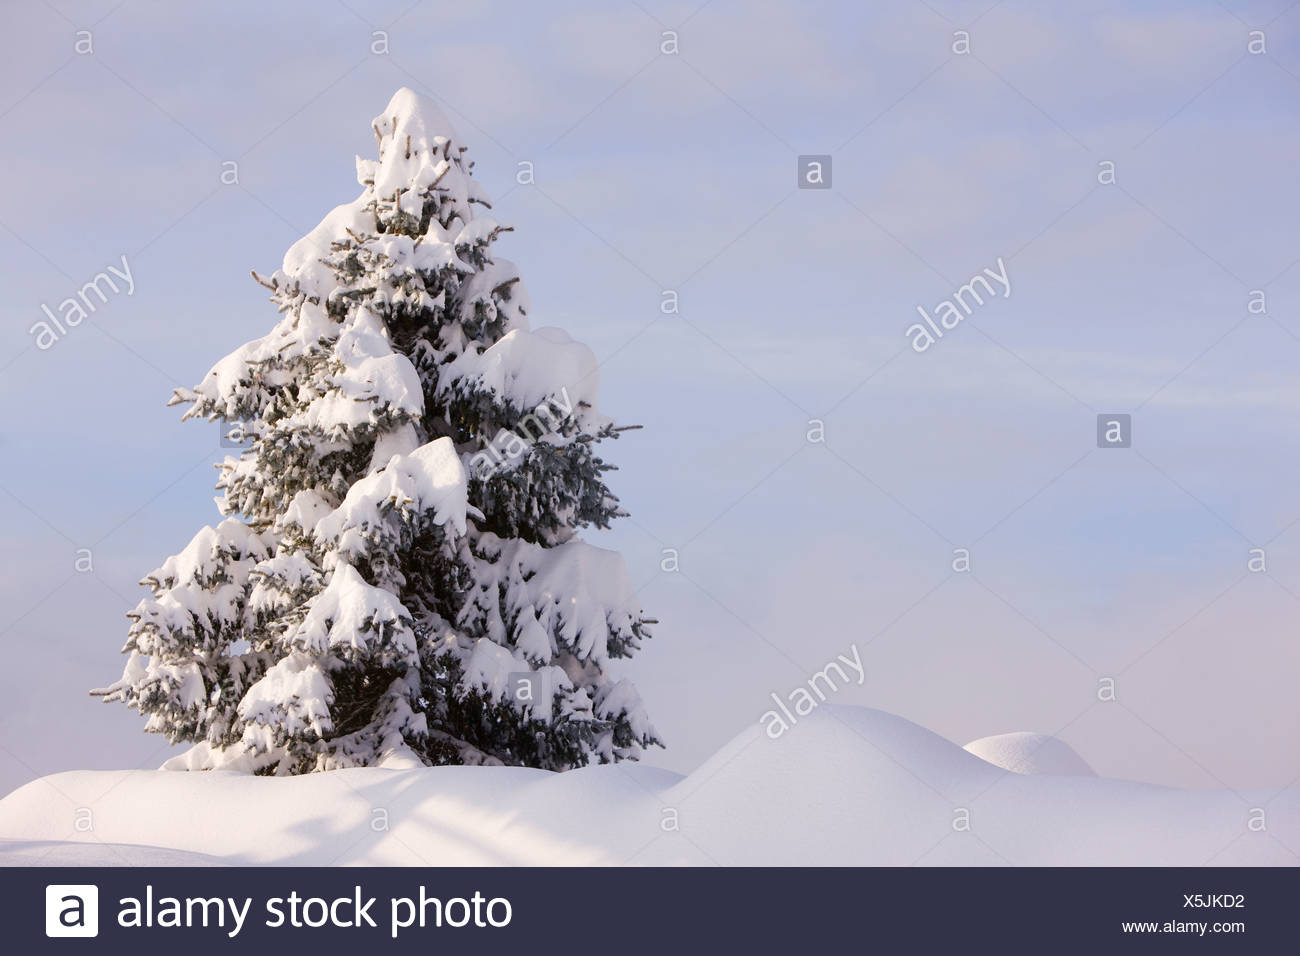 Snow-covered coniferous tree after substantial snowfall, Gailtal valley, Kaernten, Austria, Europe - Stock Image